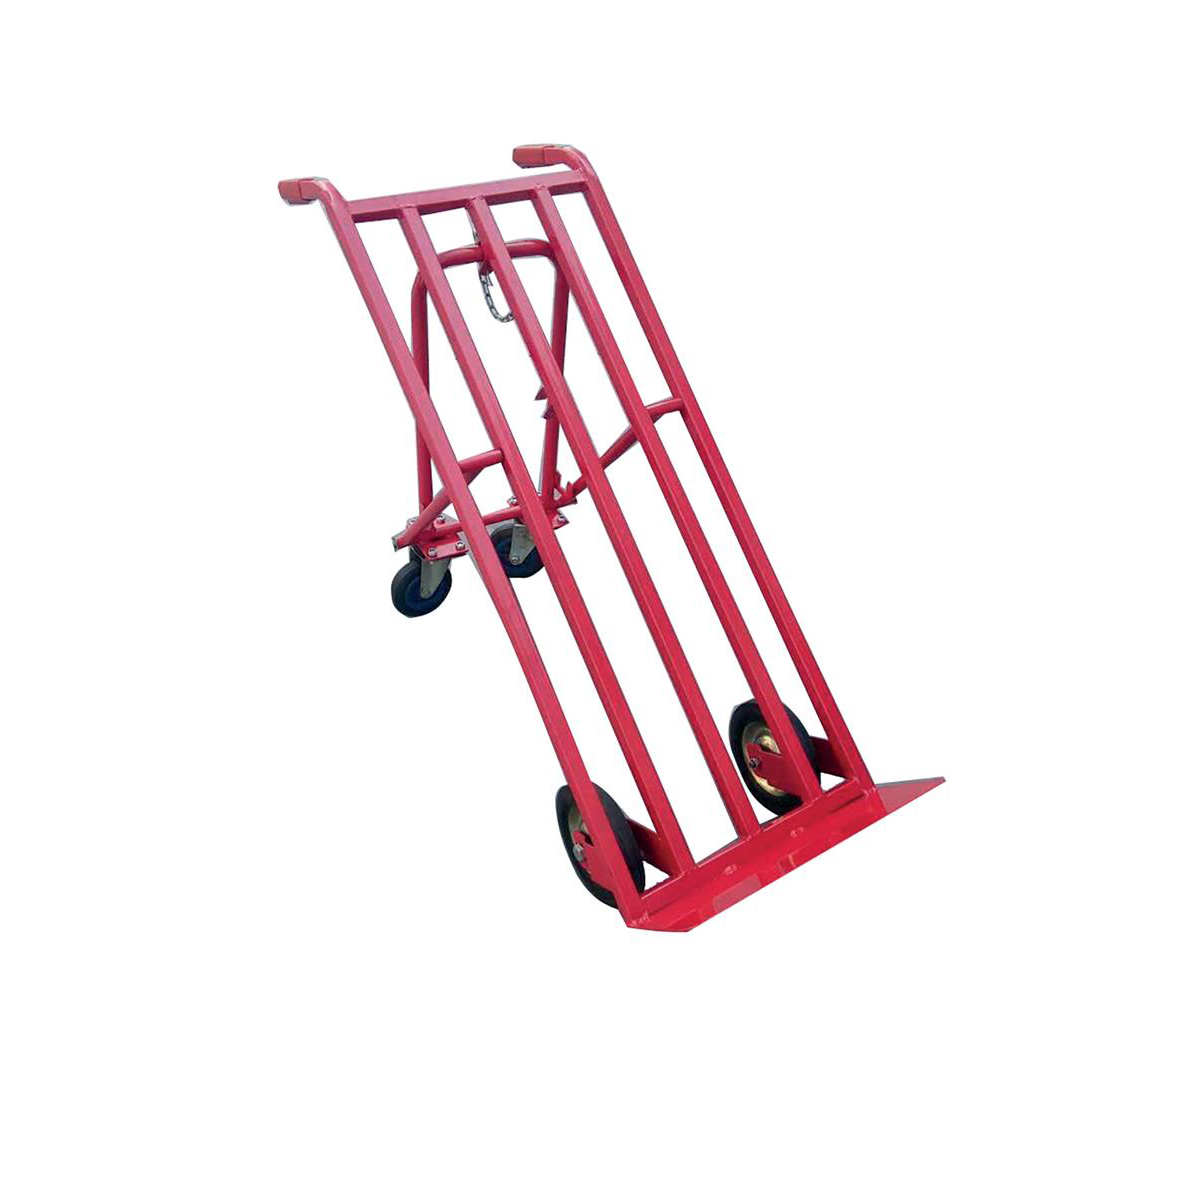 Tilt trucks 5 Star Facilities Sack Truck Heavy Duty 3 Position Steel Frame Double Rear Castors Capacity 300kg Red